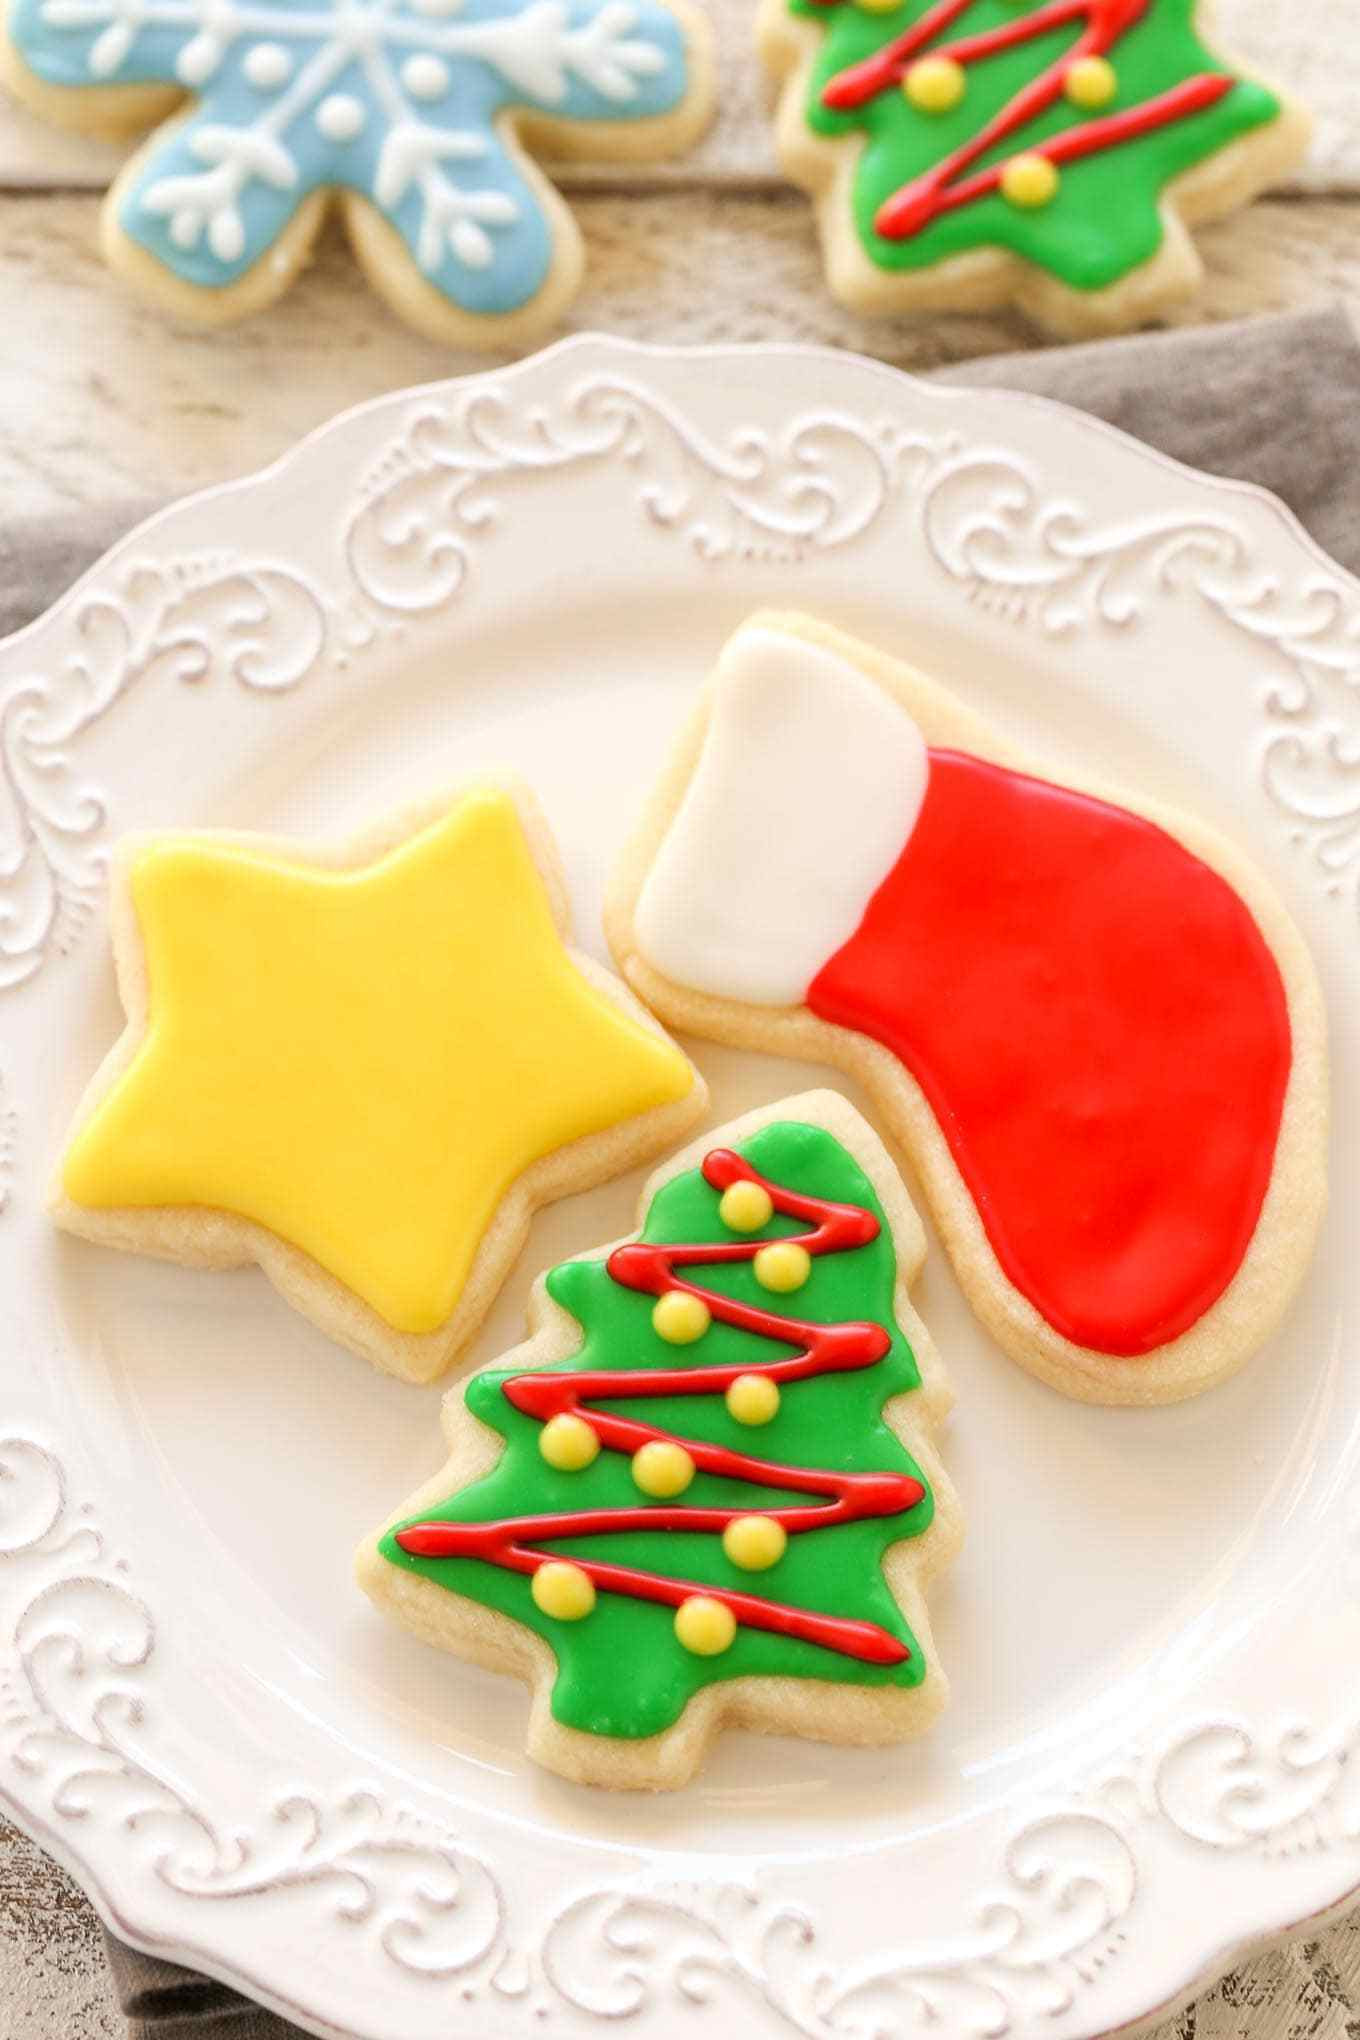 Christmas Cookies Cut Out Recipe  Soft Christmas Cut Out Sugar Cookies Live Well Bake ten